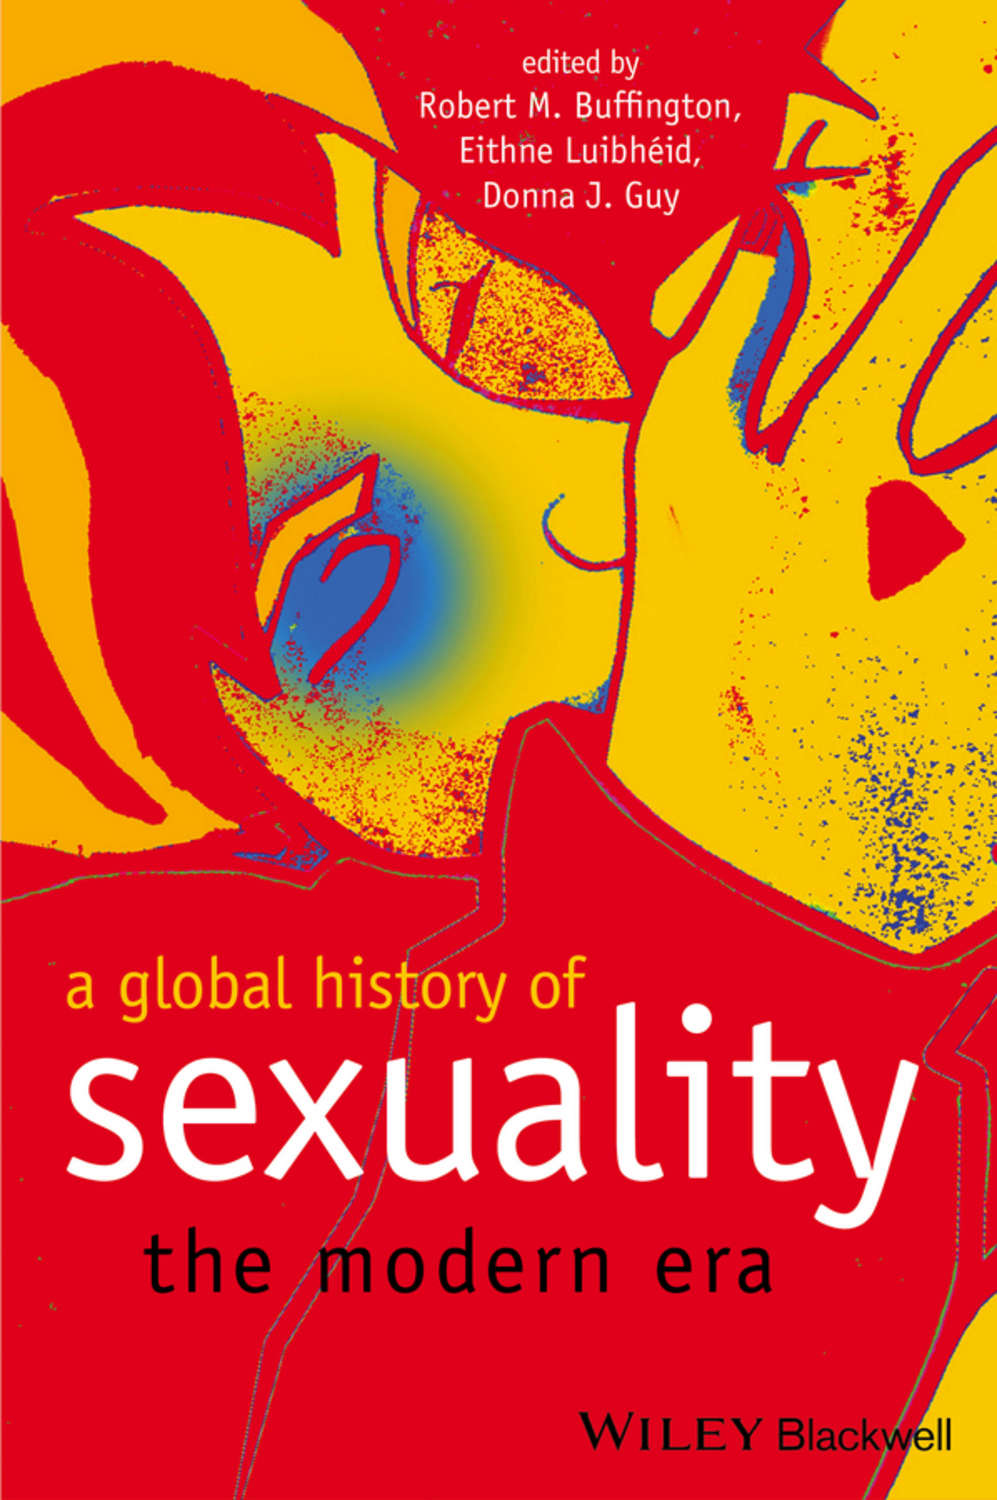 an analysis of the history of sexuality Foucault's history of sexuality vol 1 is a study of the evolution of cultural ideas about sex in the west since the end of the 17th century volume two looked at attitudes toward sex in ancient greece volume three investigated sex in ancient rome.